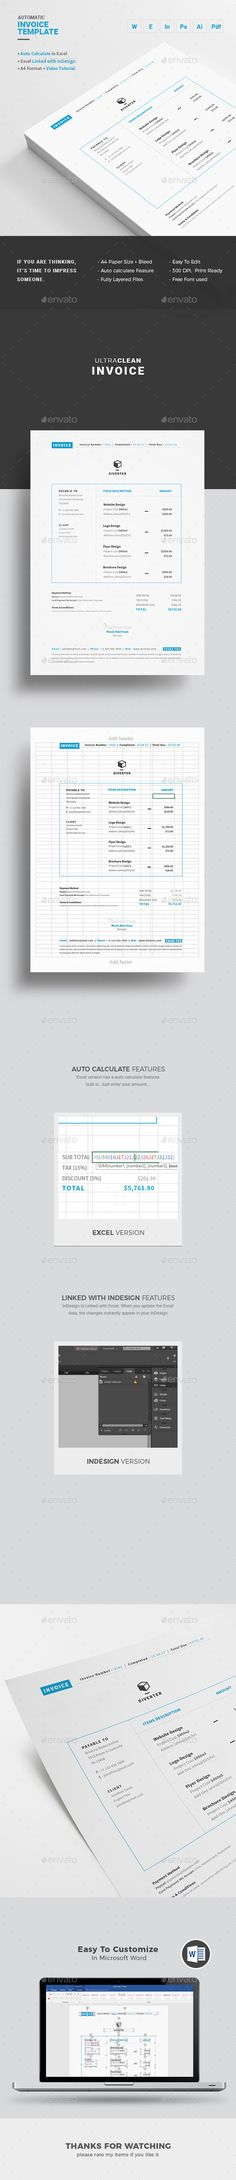 Invoice like a pro design examples and best practices for Quick will template